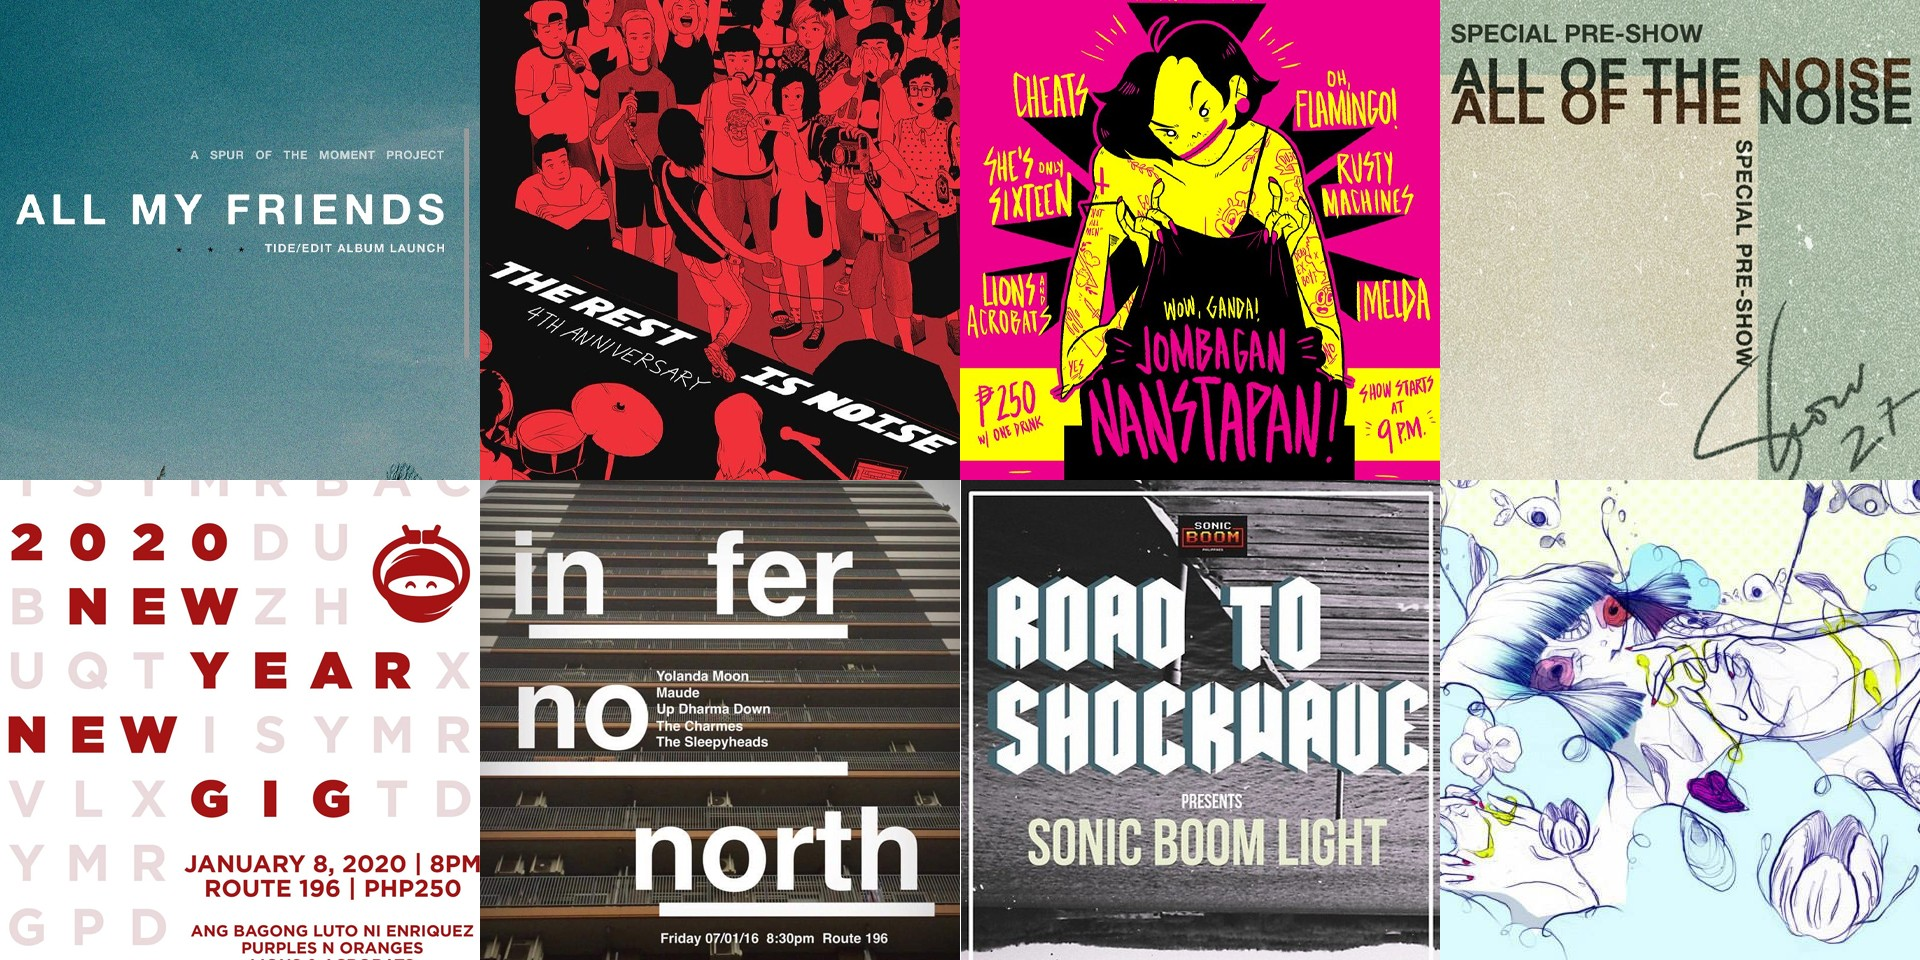 Looking at the history of Route 196 through gig posters